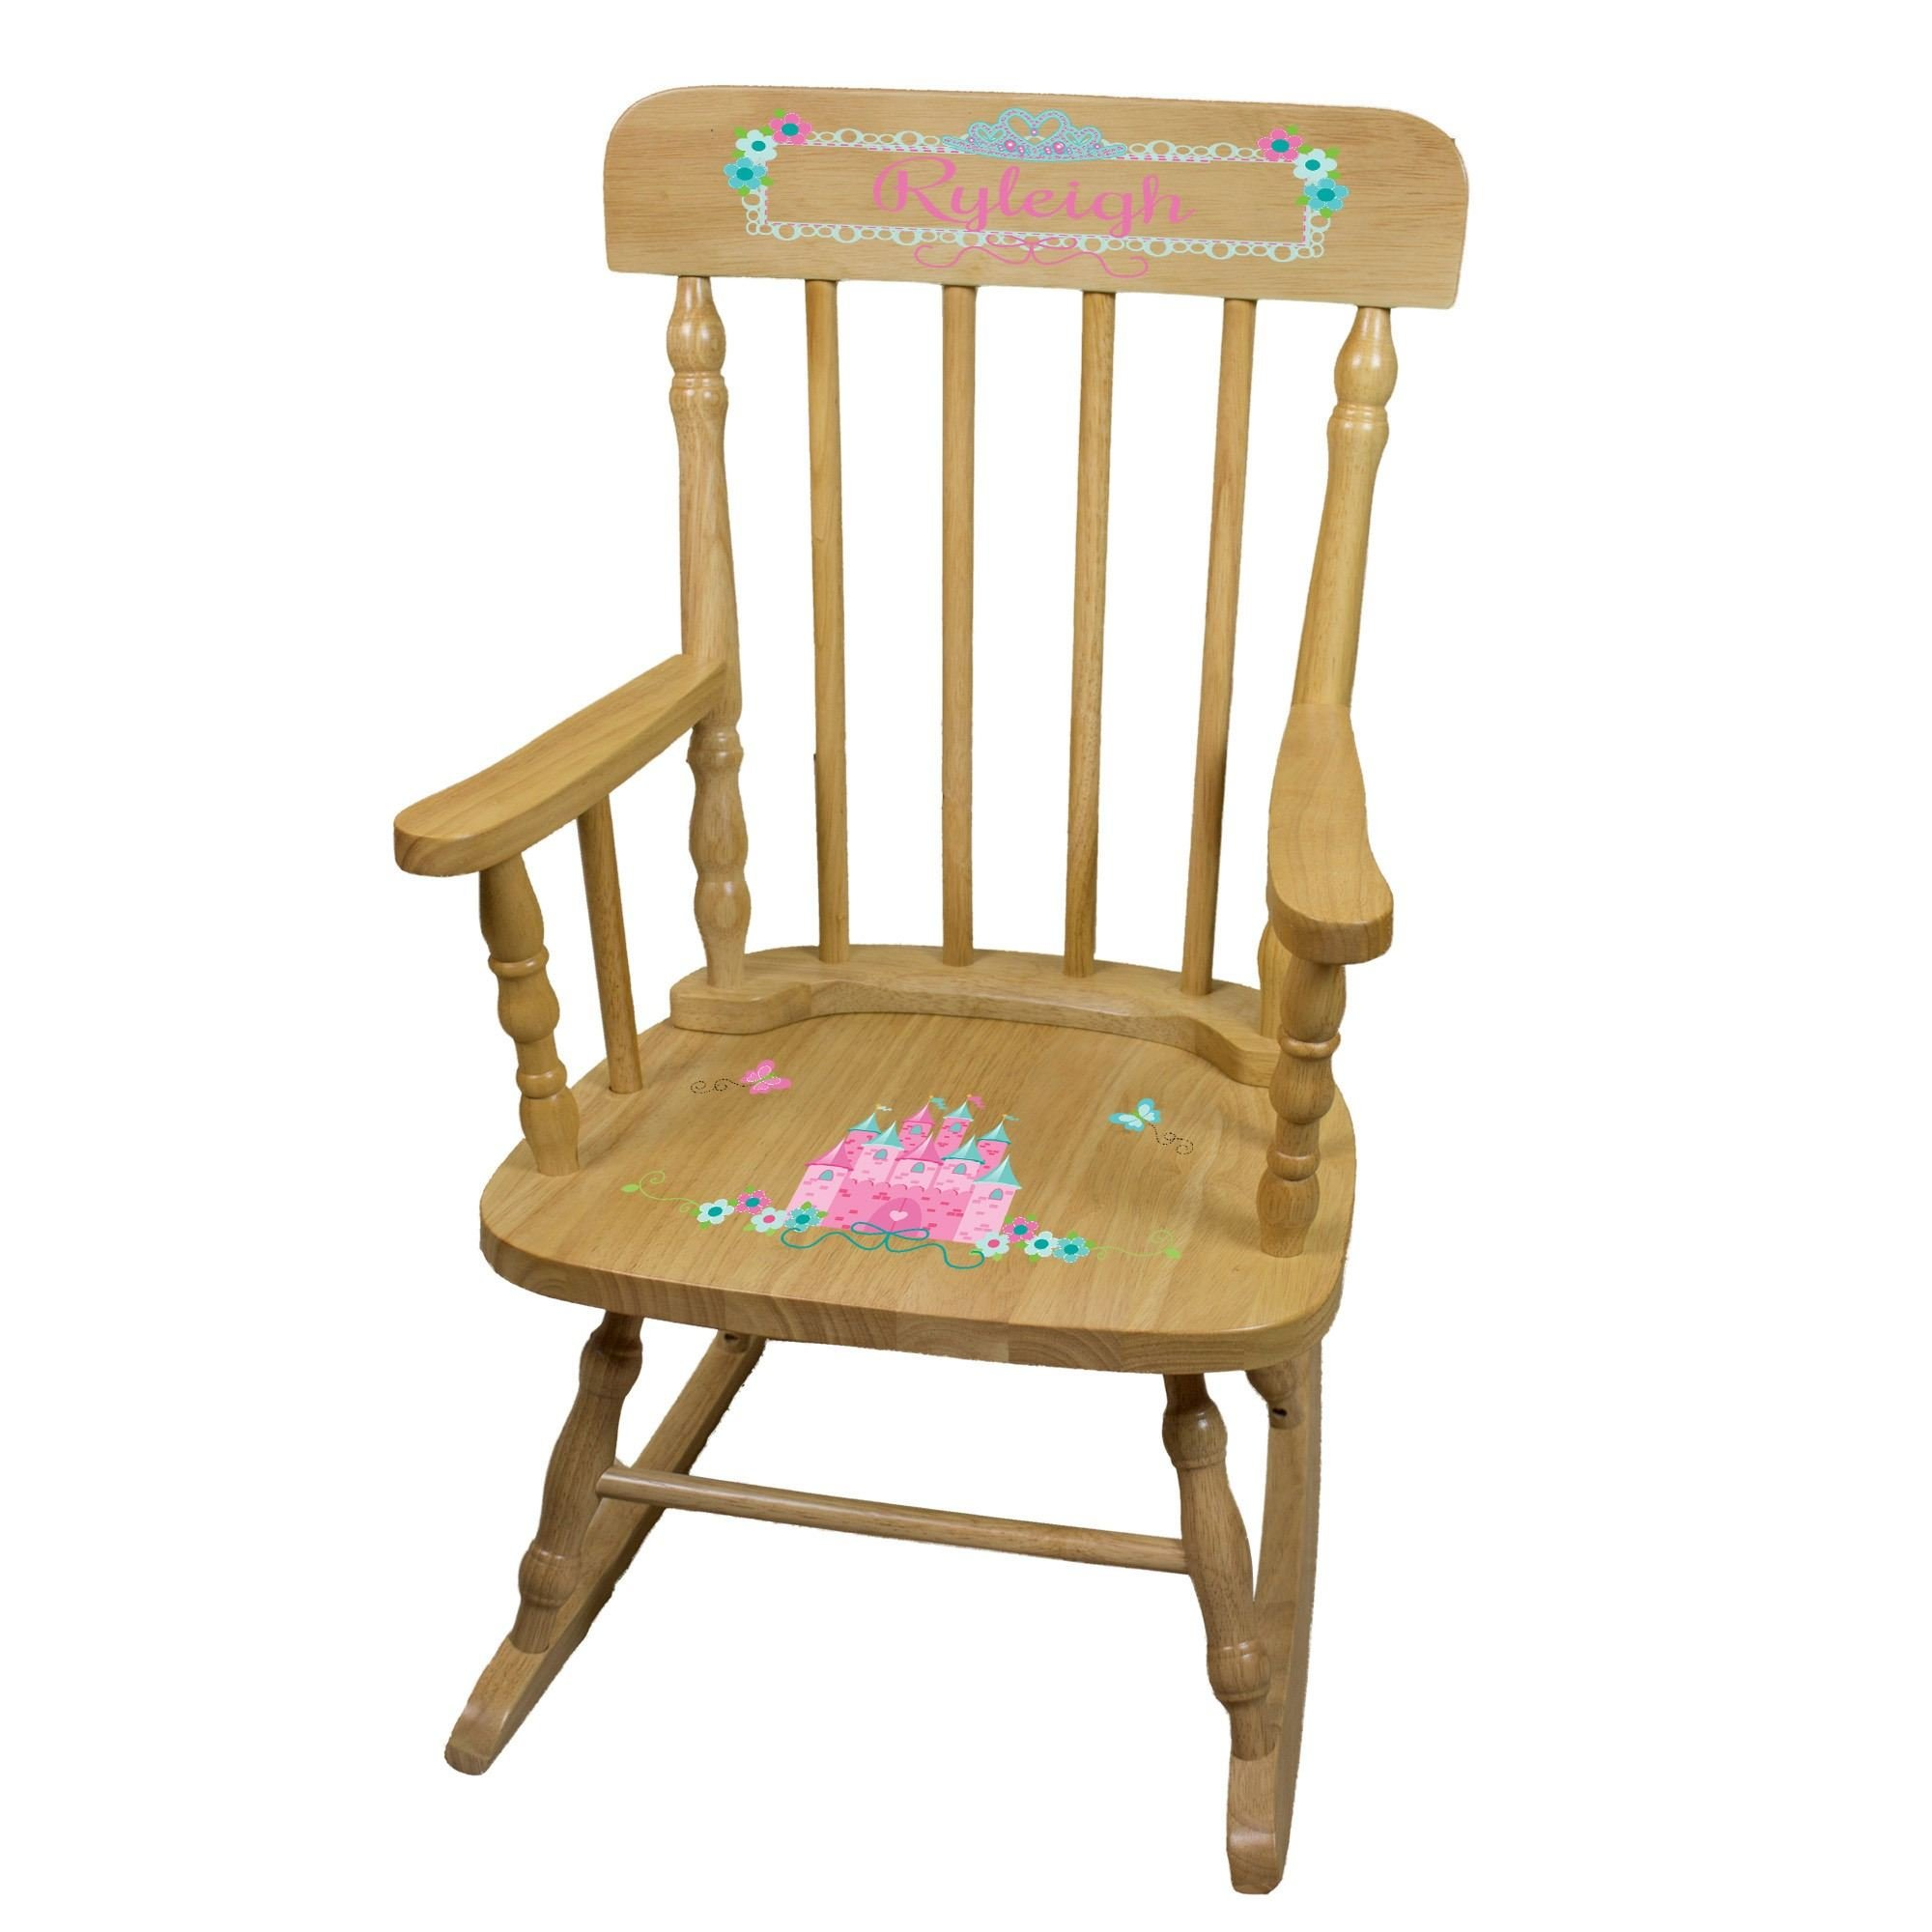 MyBambino Personalized Pink Teal Princess Castle Natural Wooden Childrens Rocking Chair